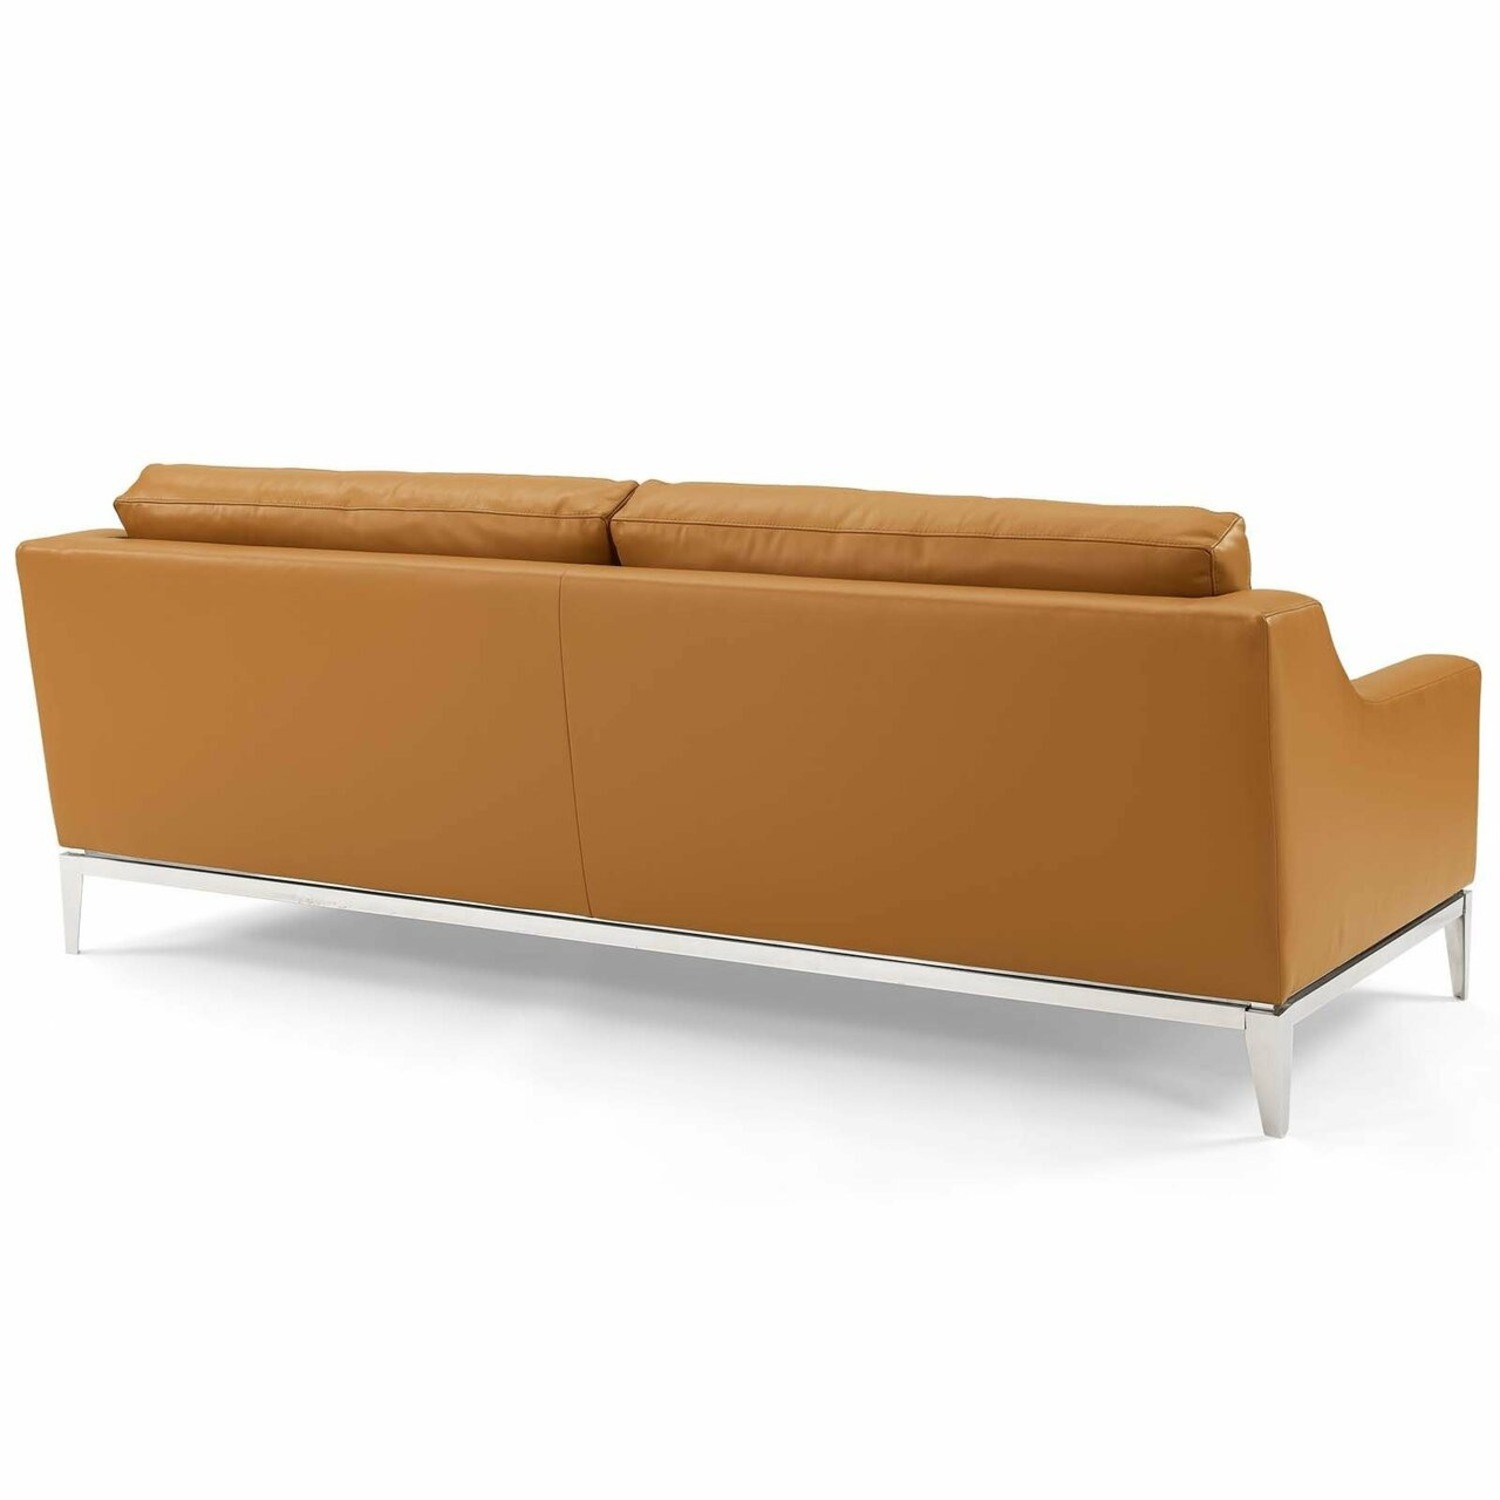 Sofa In Tan Leather Upholstery W/ Steel Base - image-2